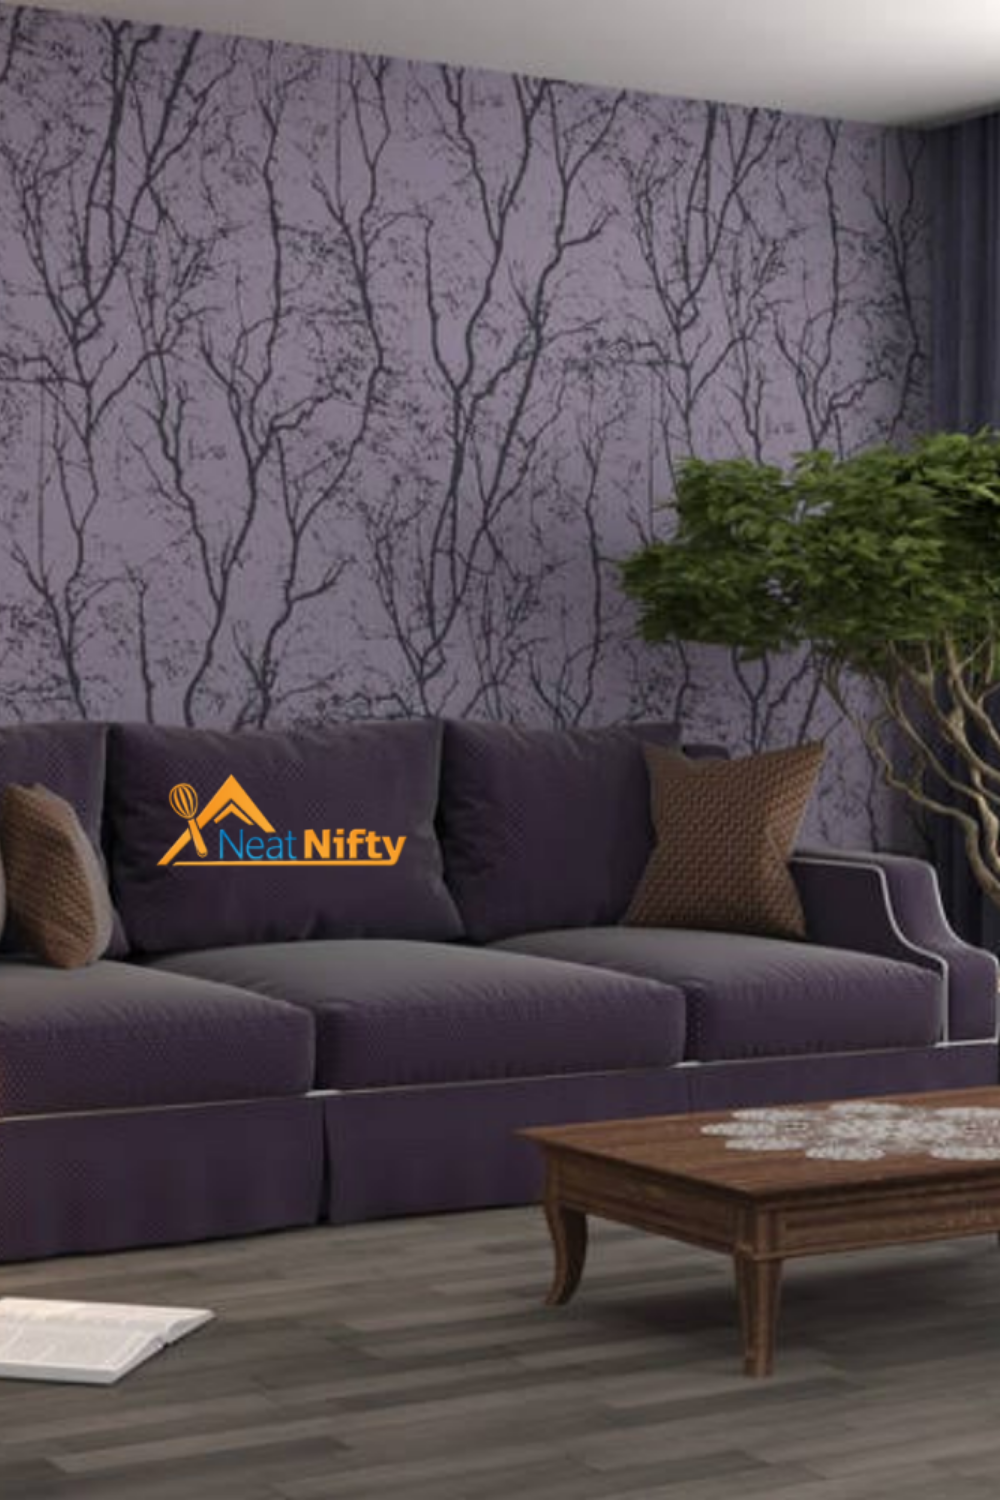 Purple is usually a color of royalty. Painted walls in purple color are a good way to awesome decorations. #homedecor #homedecoration #homedecorating #homedecorideas #homedecoratingideas #interiordecoration #interiordecorations #interiordecorationdeluxe #livingroom #violet #livingroomdecor #livingroomfurniture #LivingRoomInterior #rug #rugs #couch #bookshelf #adjusted #photoframe #photoframes #woodenfurniture #WoodenTable #coffeetable #reflectiongram #reflectionphotography